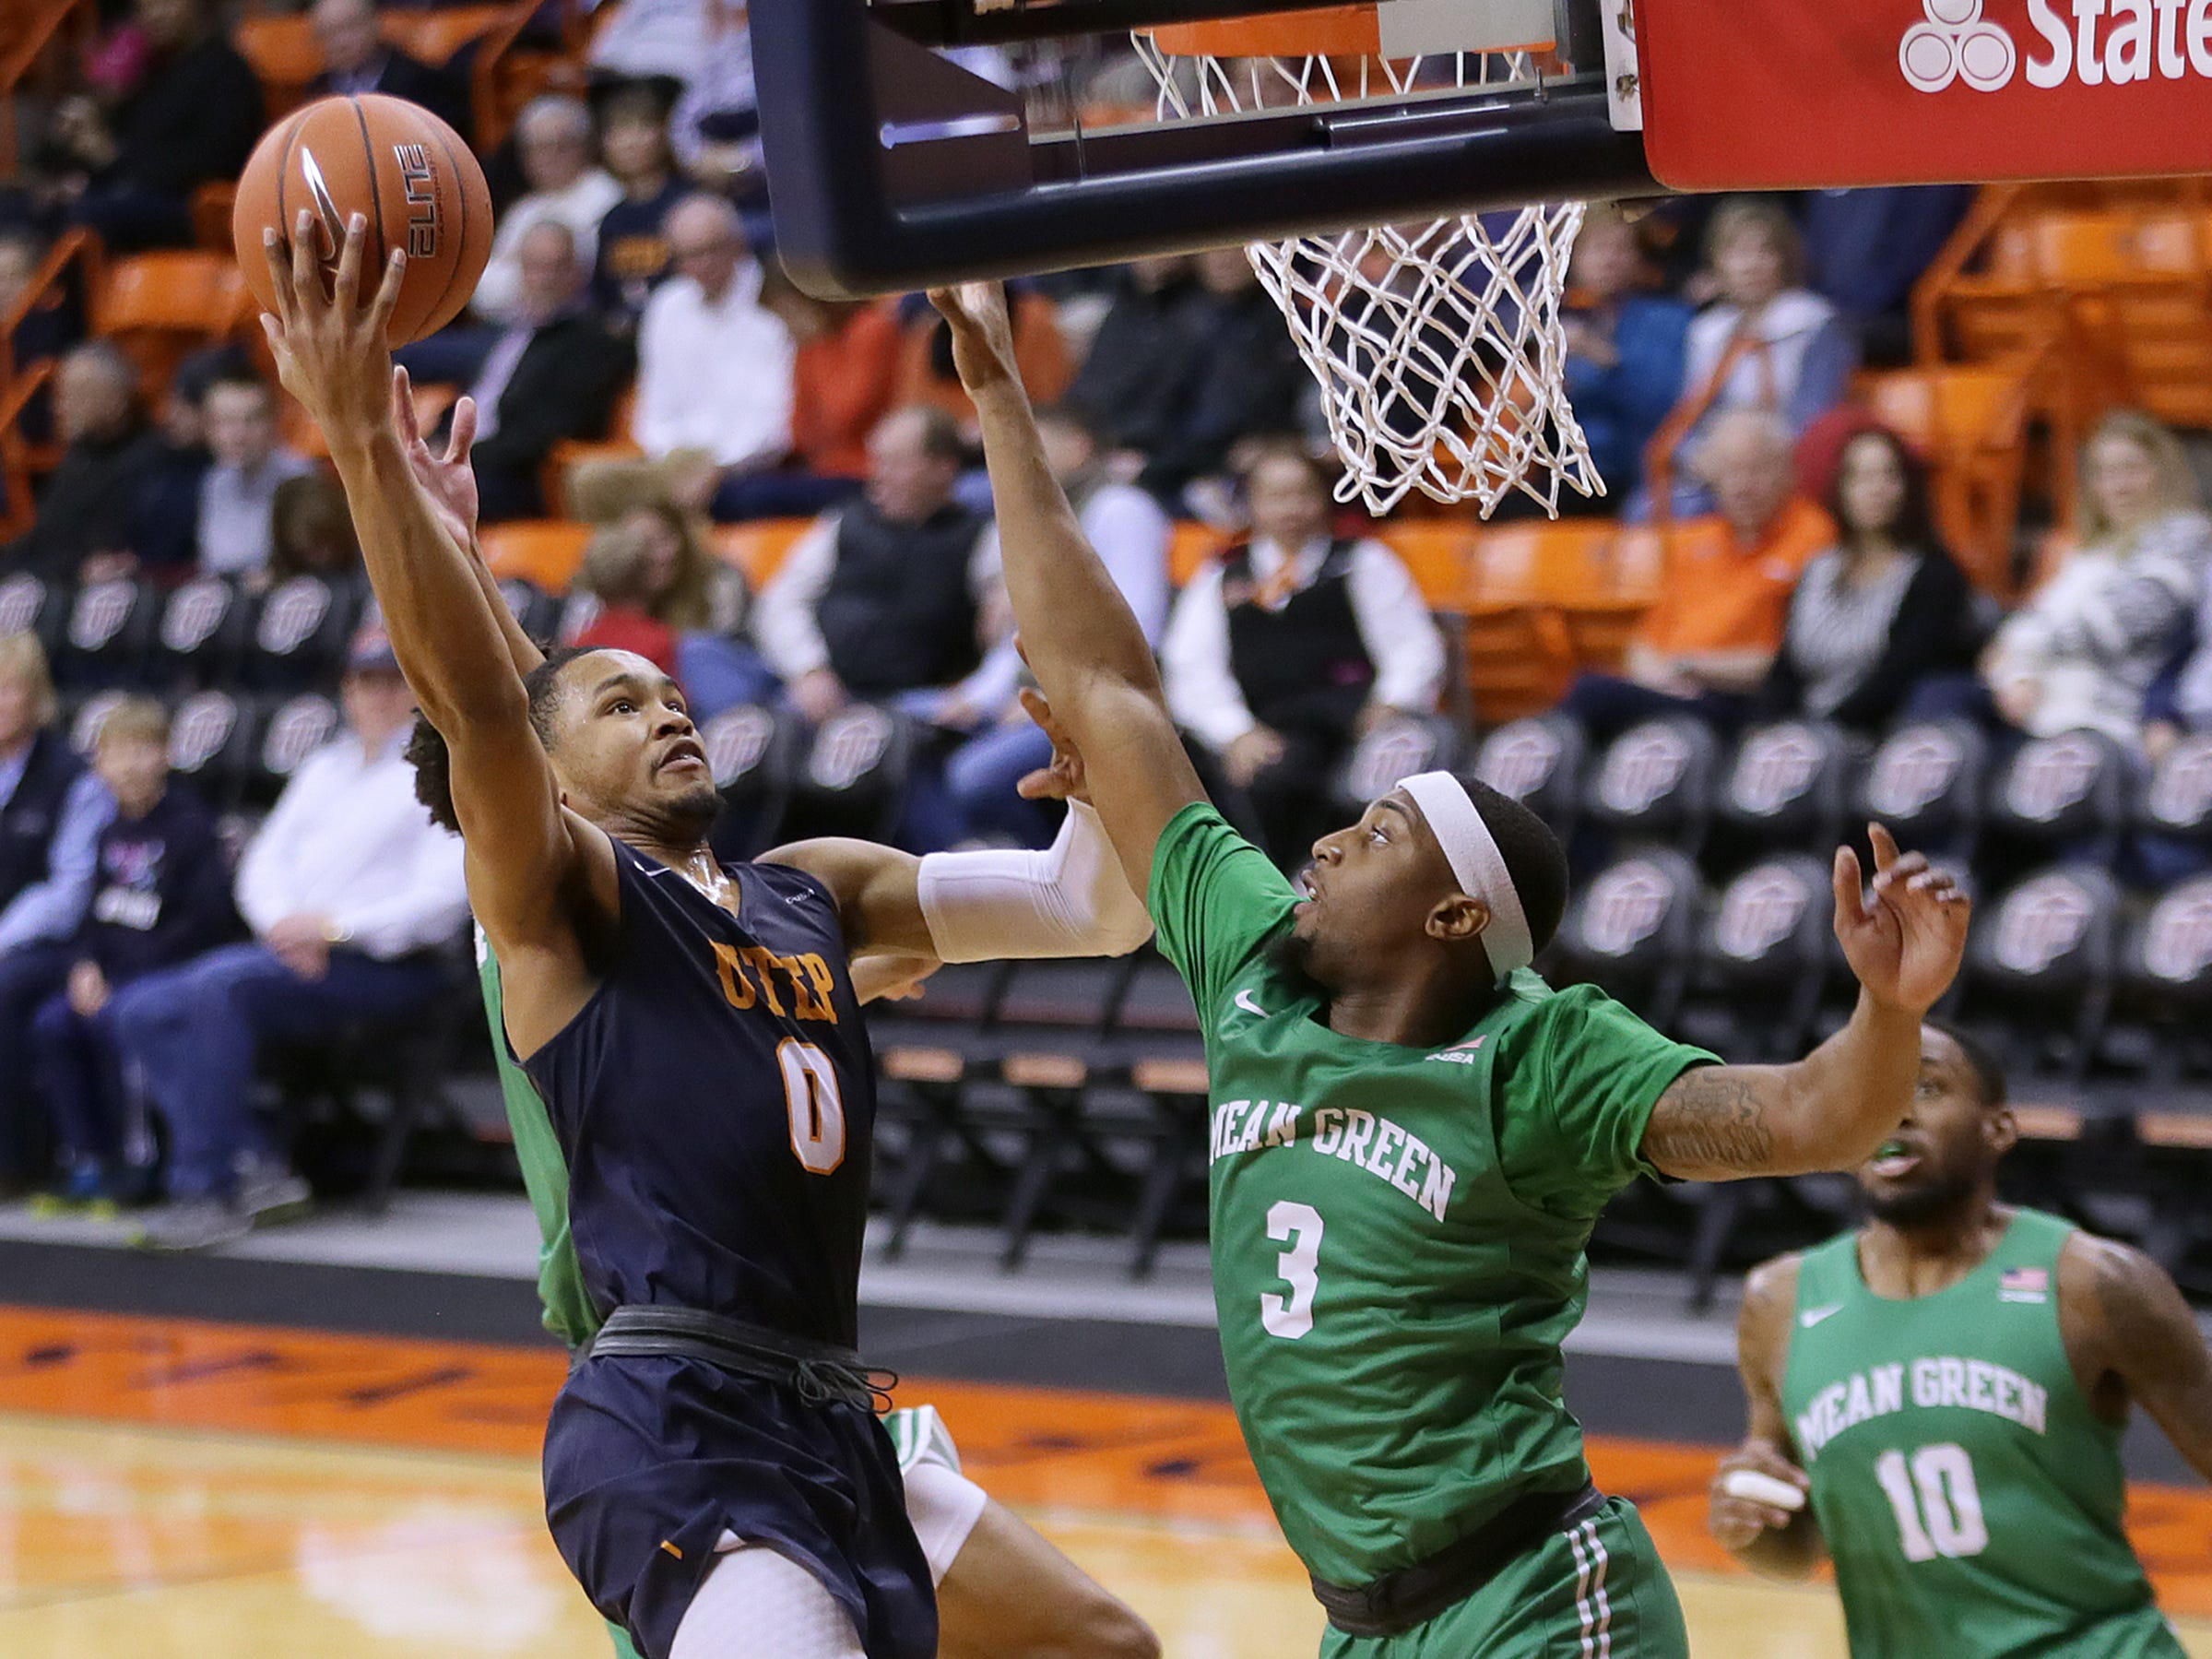 The Miners hounded the Mean Green into 19 turnovers and 41 percent shooting but fell to North Texas 58-51 on Thursday, Jan. 10, 2019, at the Don Haskins Center.